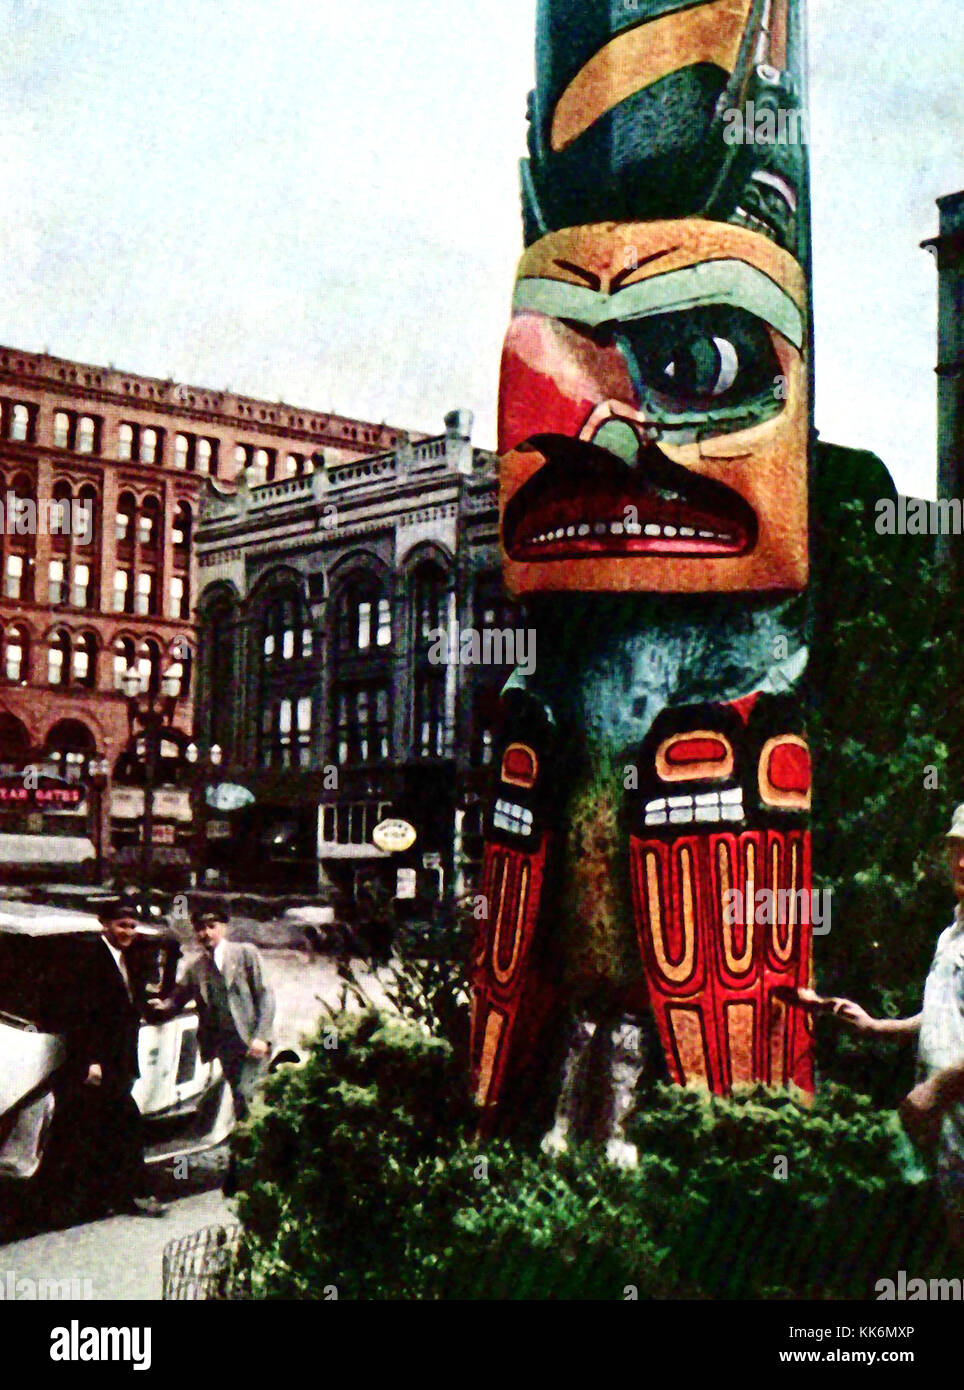 1933 - Vintage color photograph of the Native Indian Totem Pole in Pioneer Square, Downtown Seattle.  Originally - Stock Image